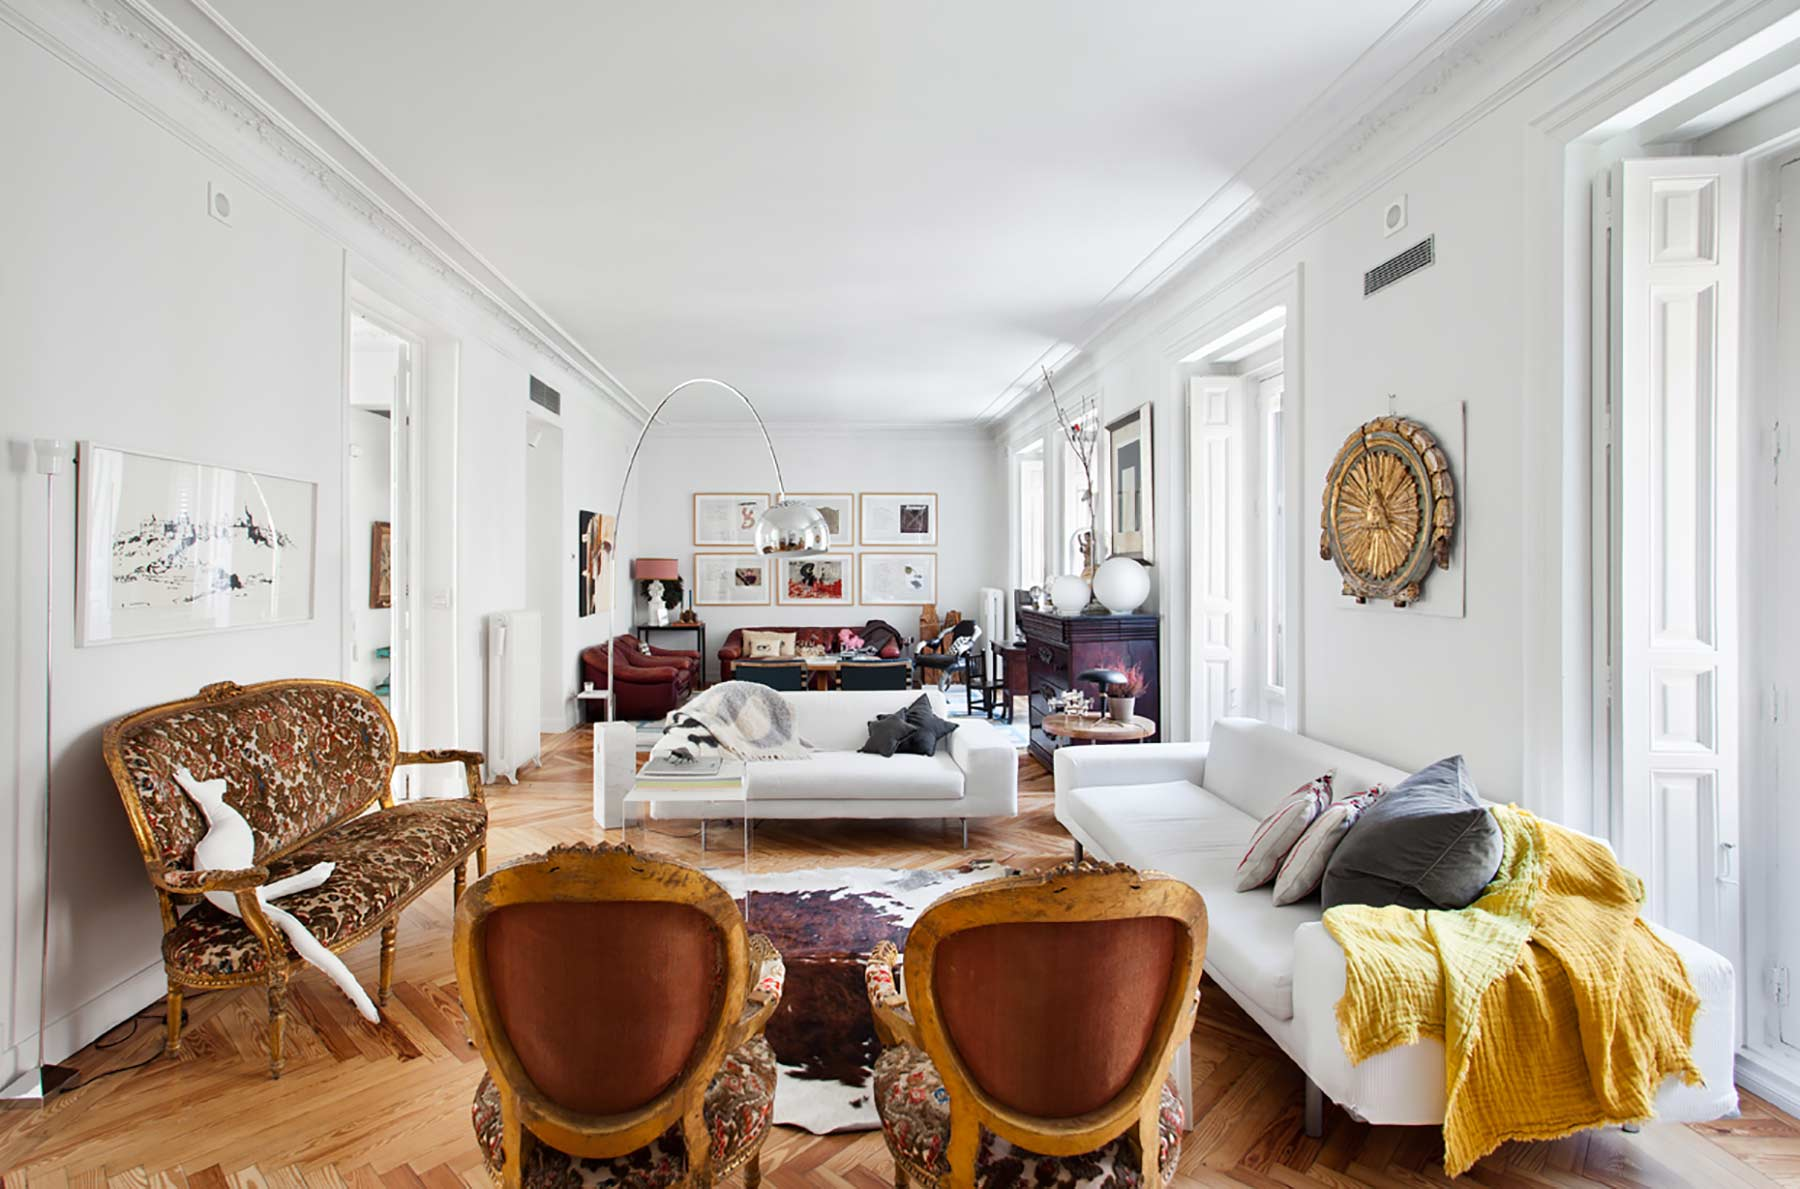 Madrid - Spain - Apartment, 4 rooms, 4 bedrooms - Slideshow Picture 2